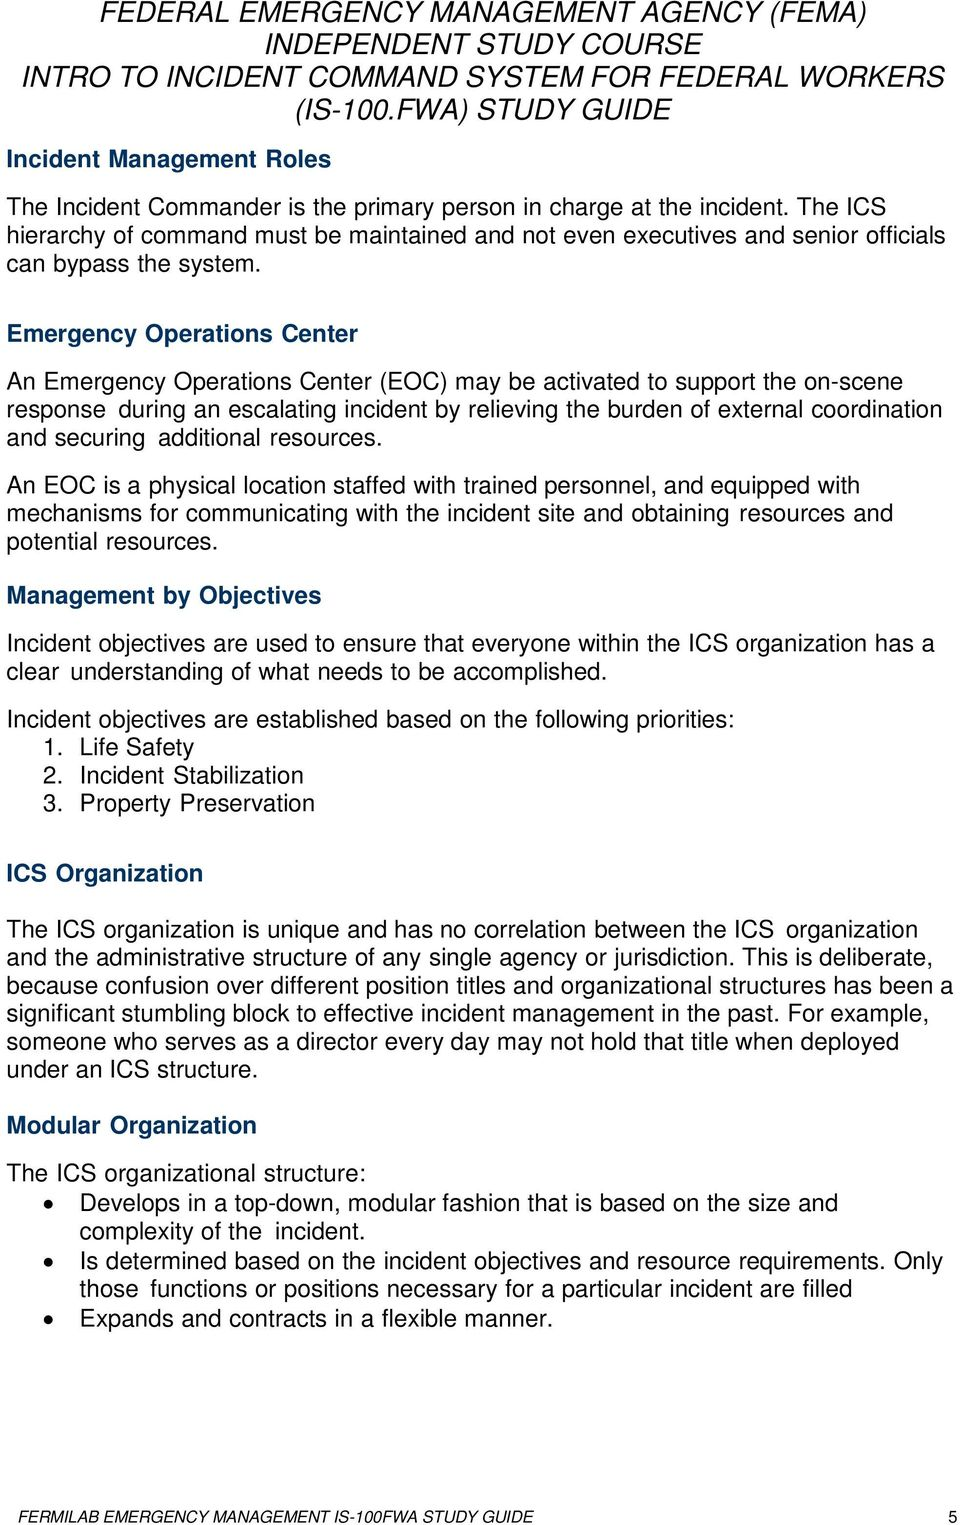 Emergency Operations Center An Emergency Operations Center (EOC) may be activated to support the on-scene response during an escalating incident by relieving the burden of external coordination and